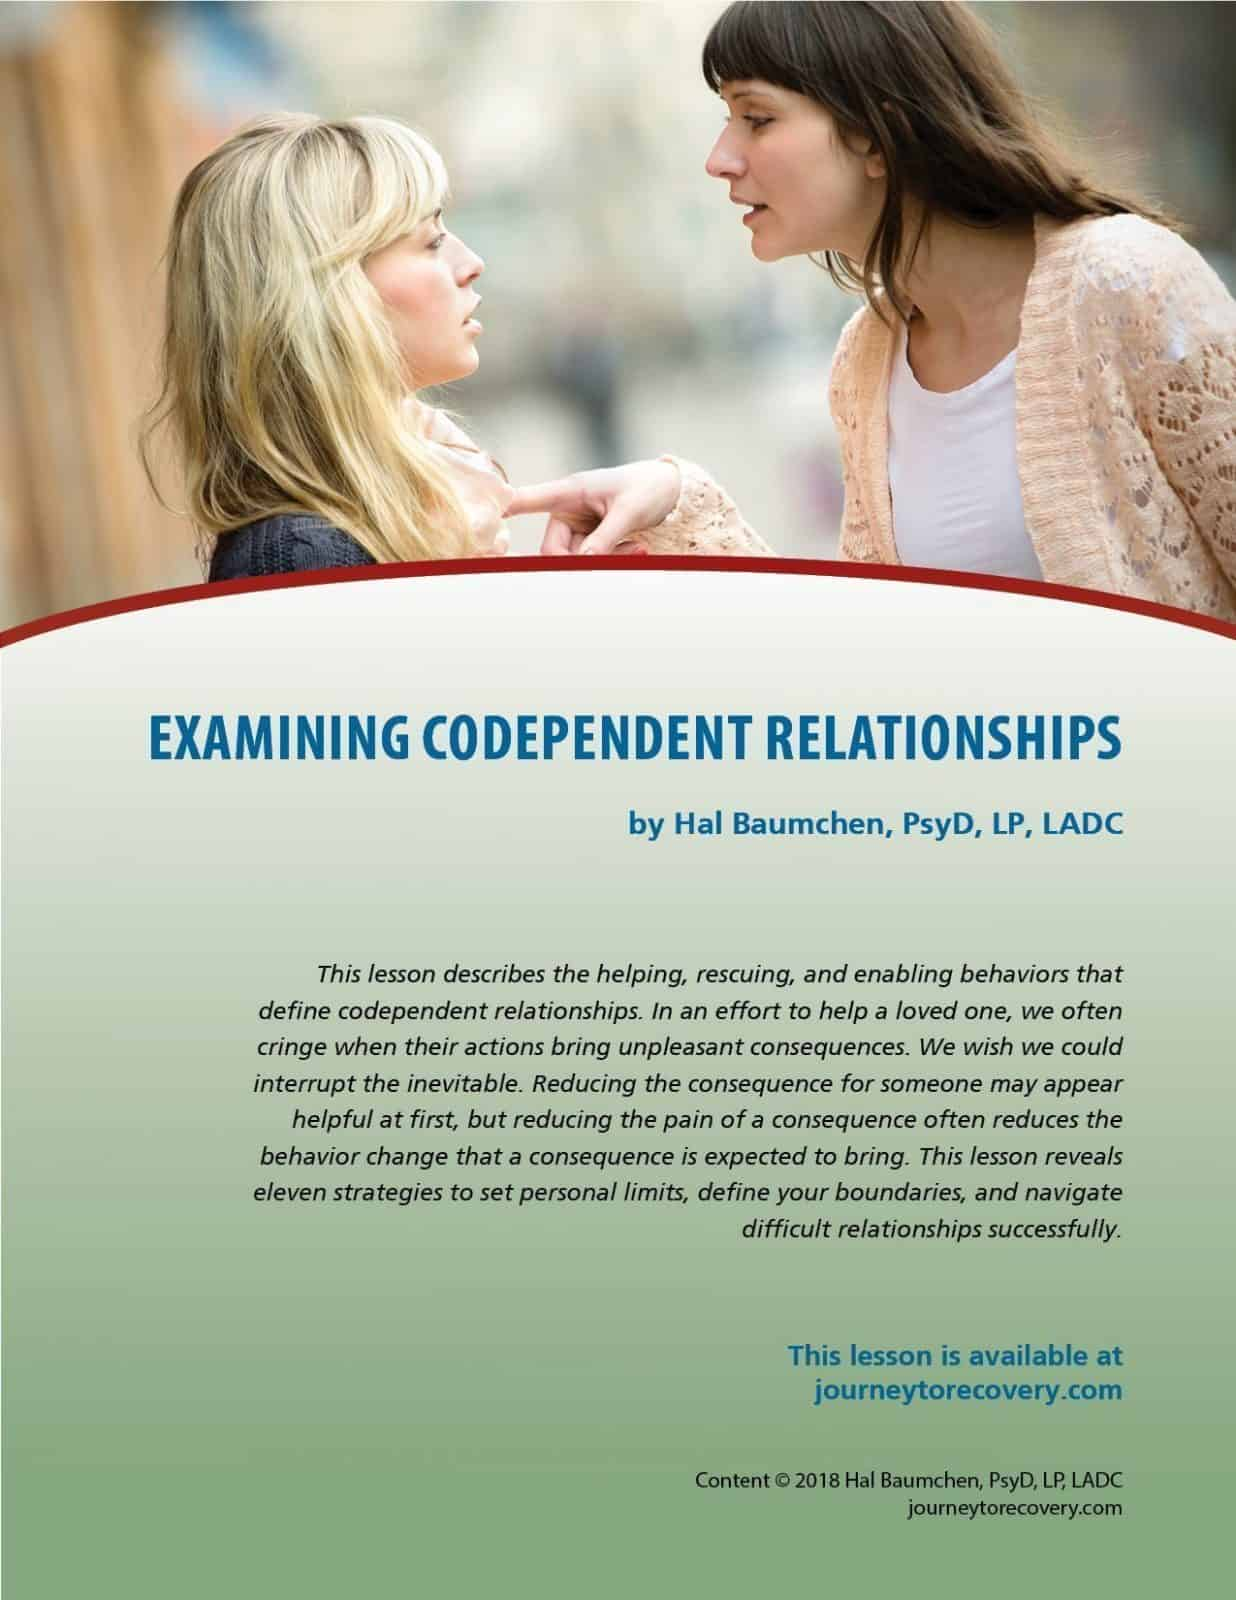 Examining Codependent Relationships (COD Lesson)